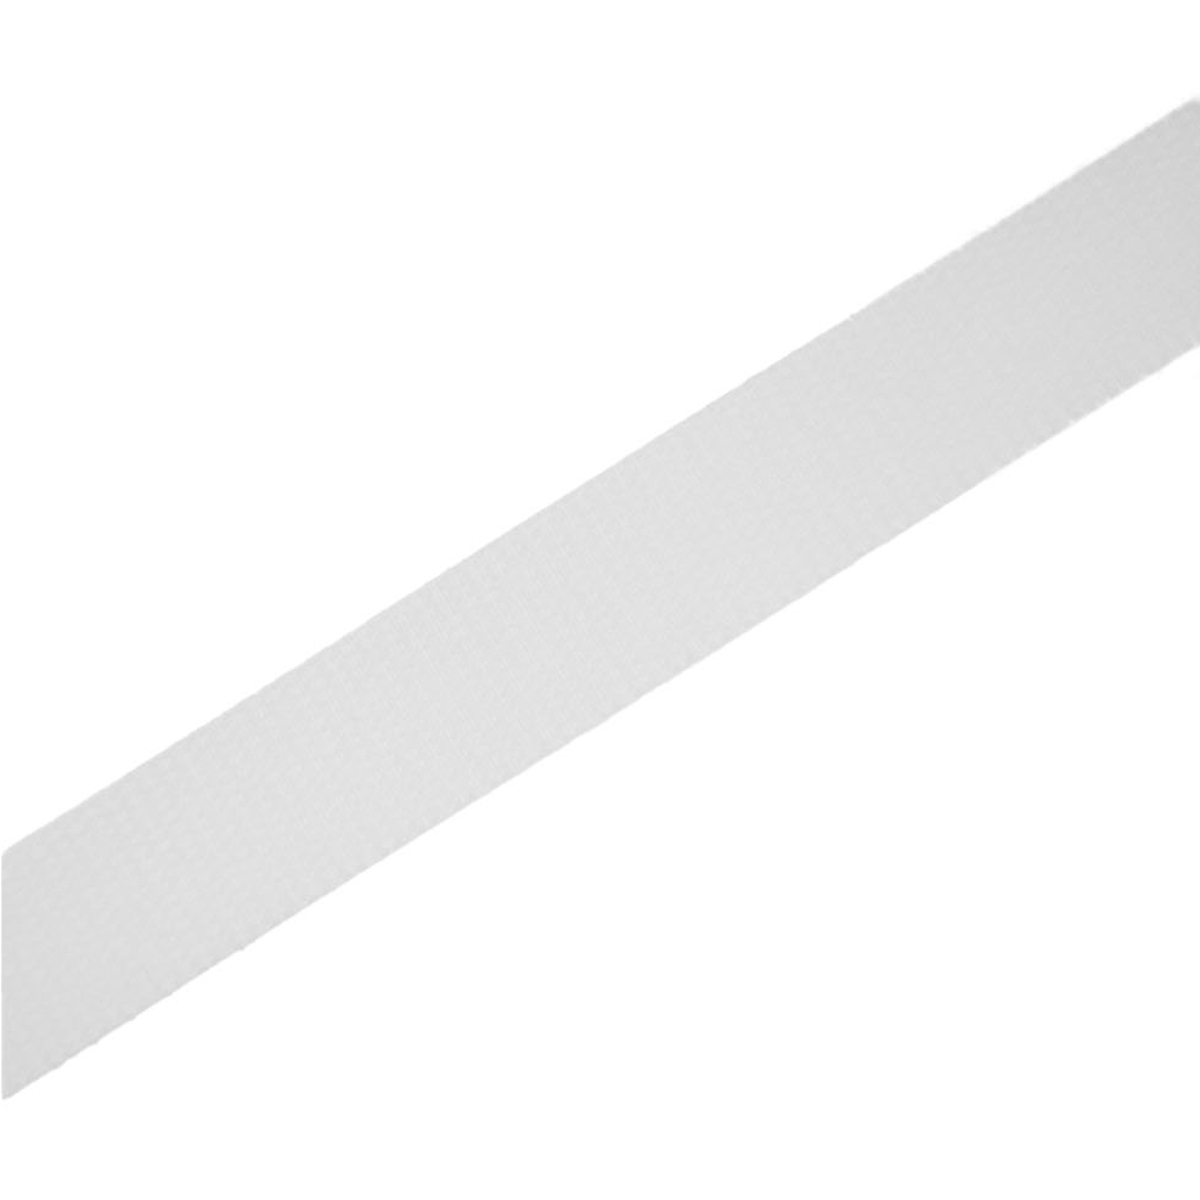 Hook-tape white